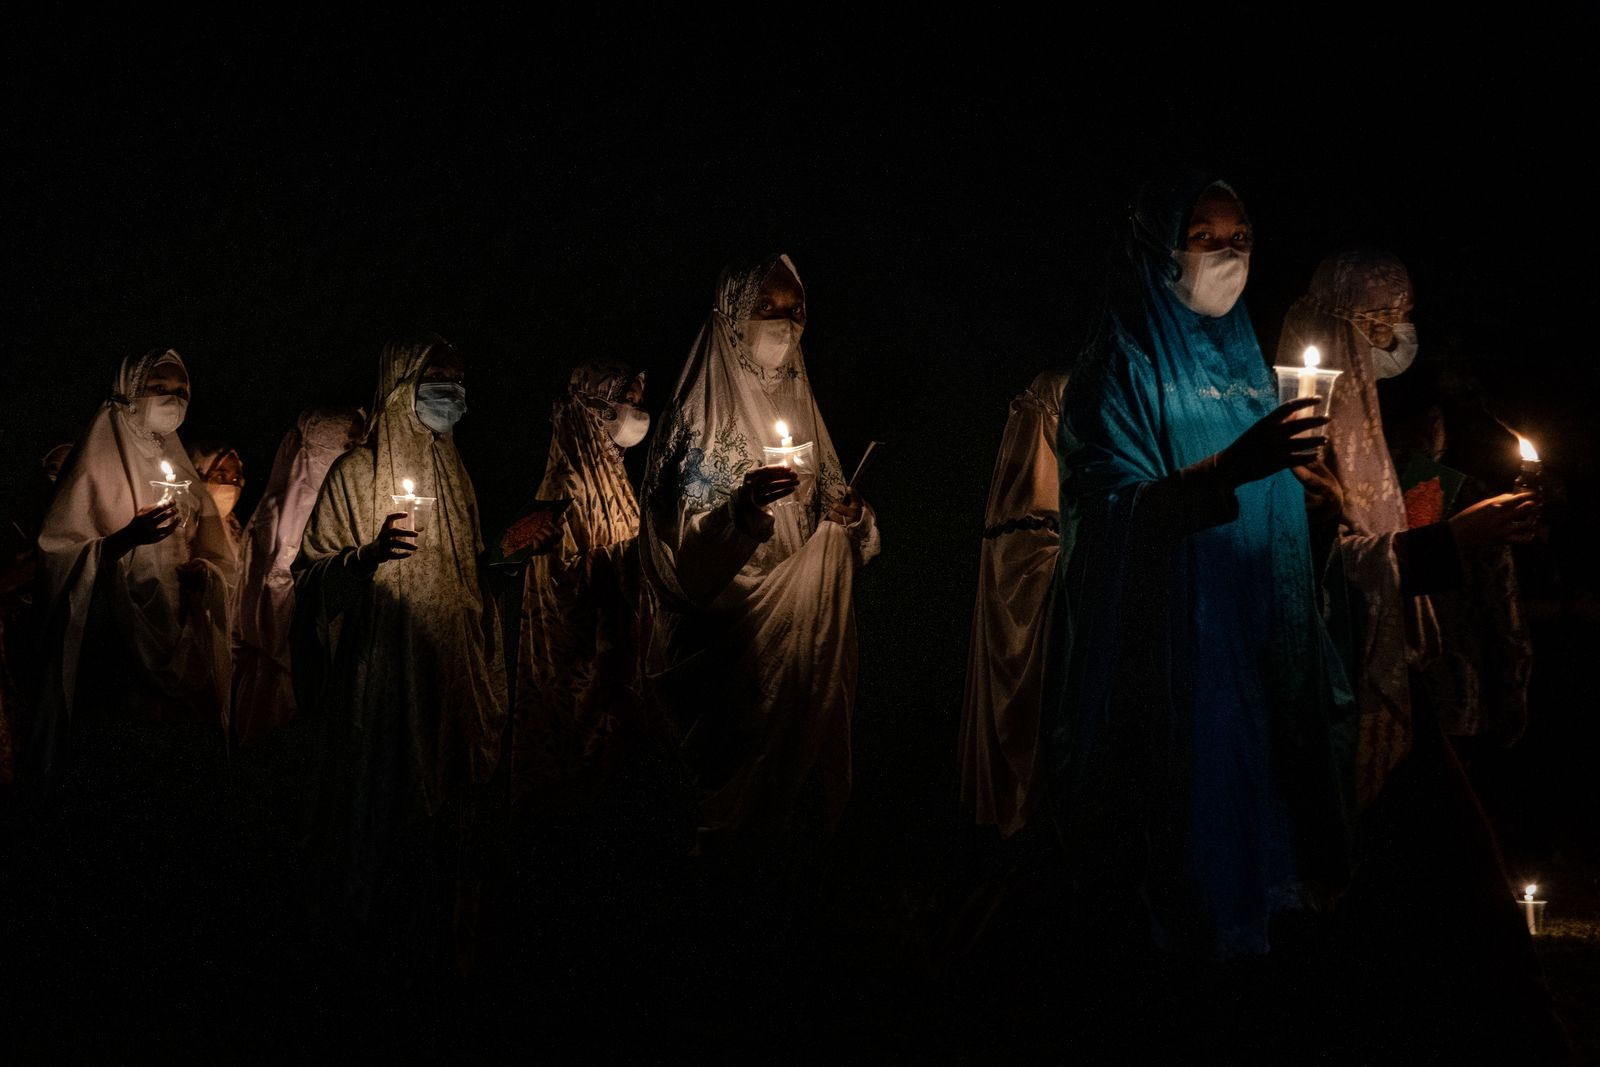 Indonesian Muslims Read Koran By Candlelight